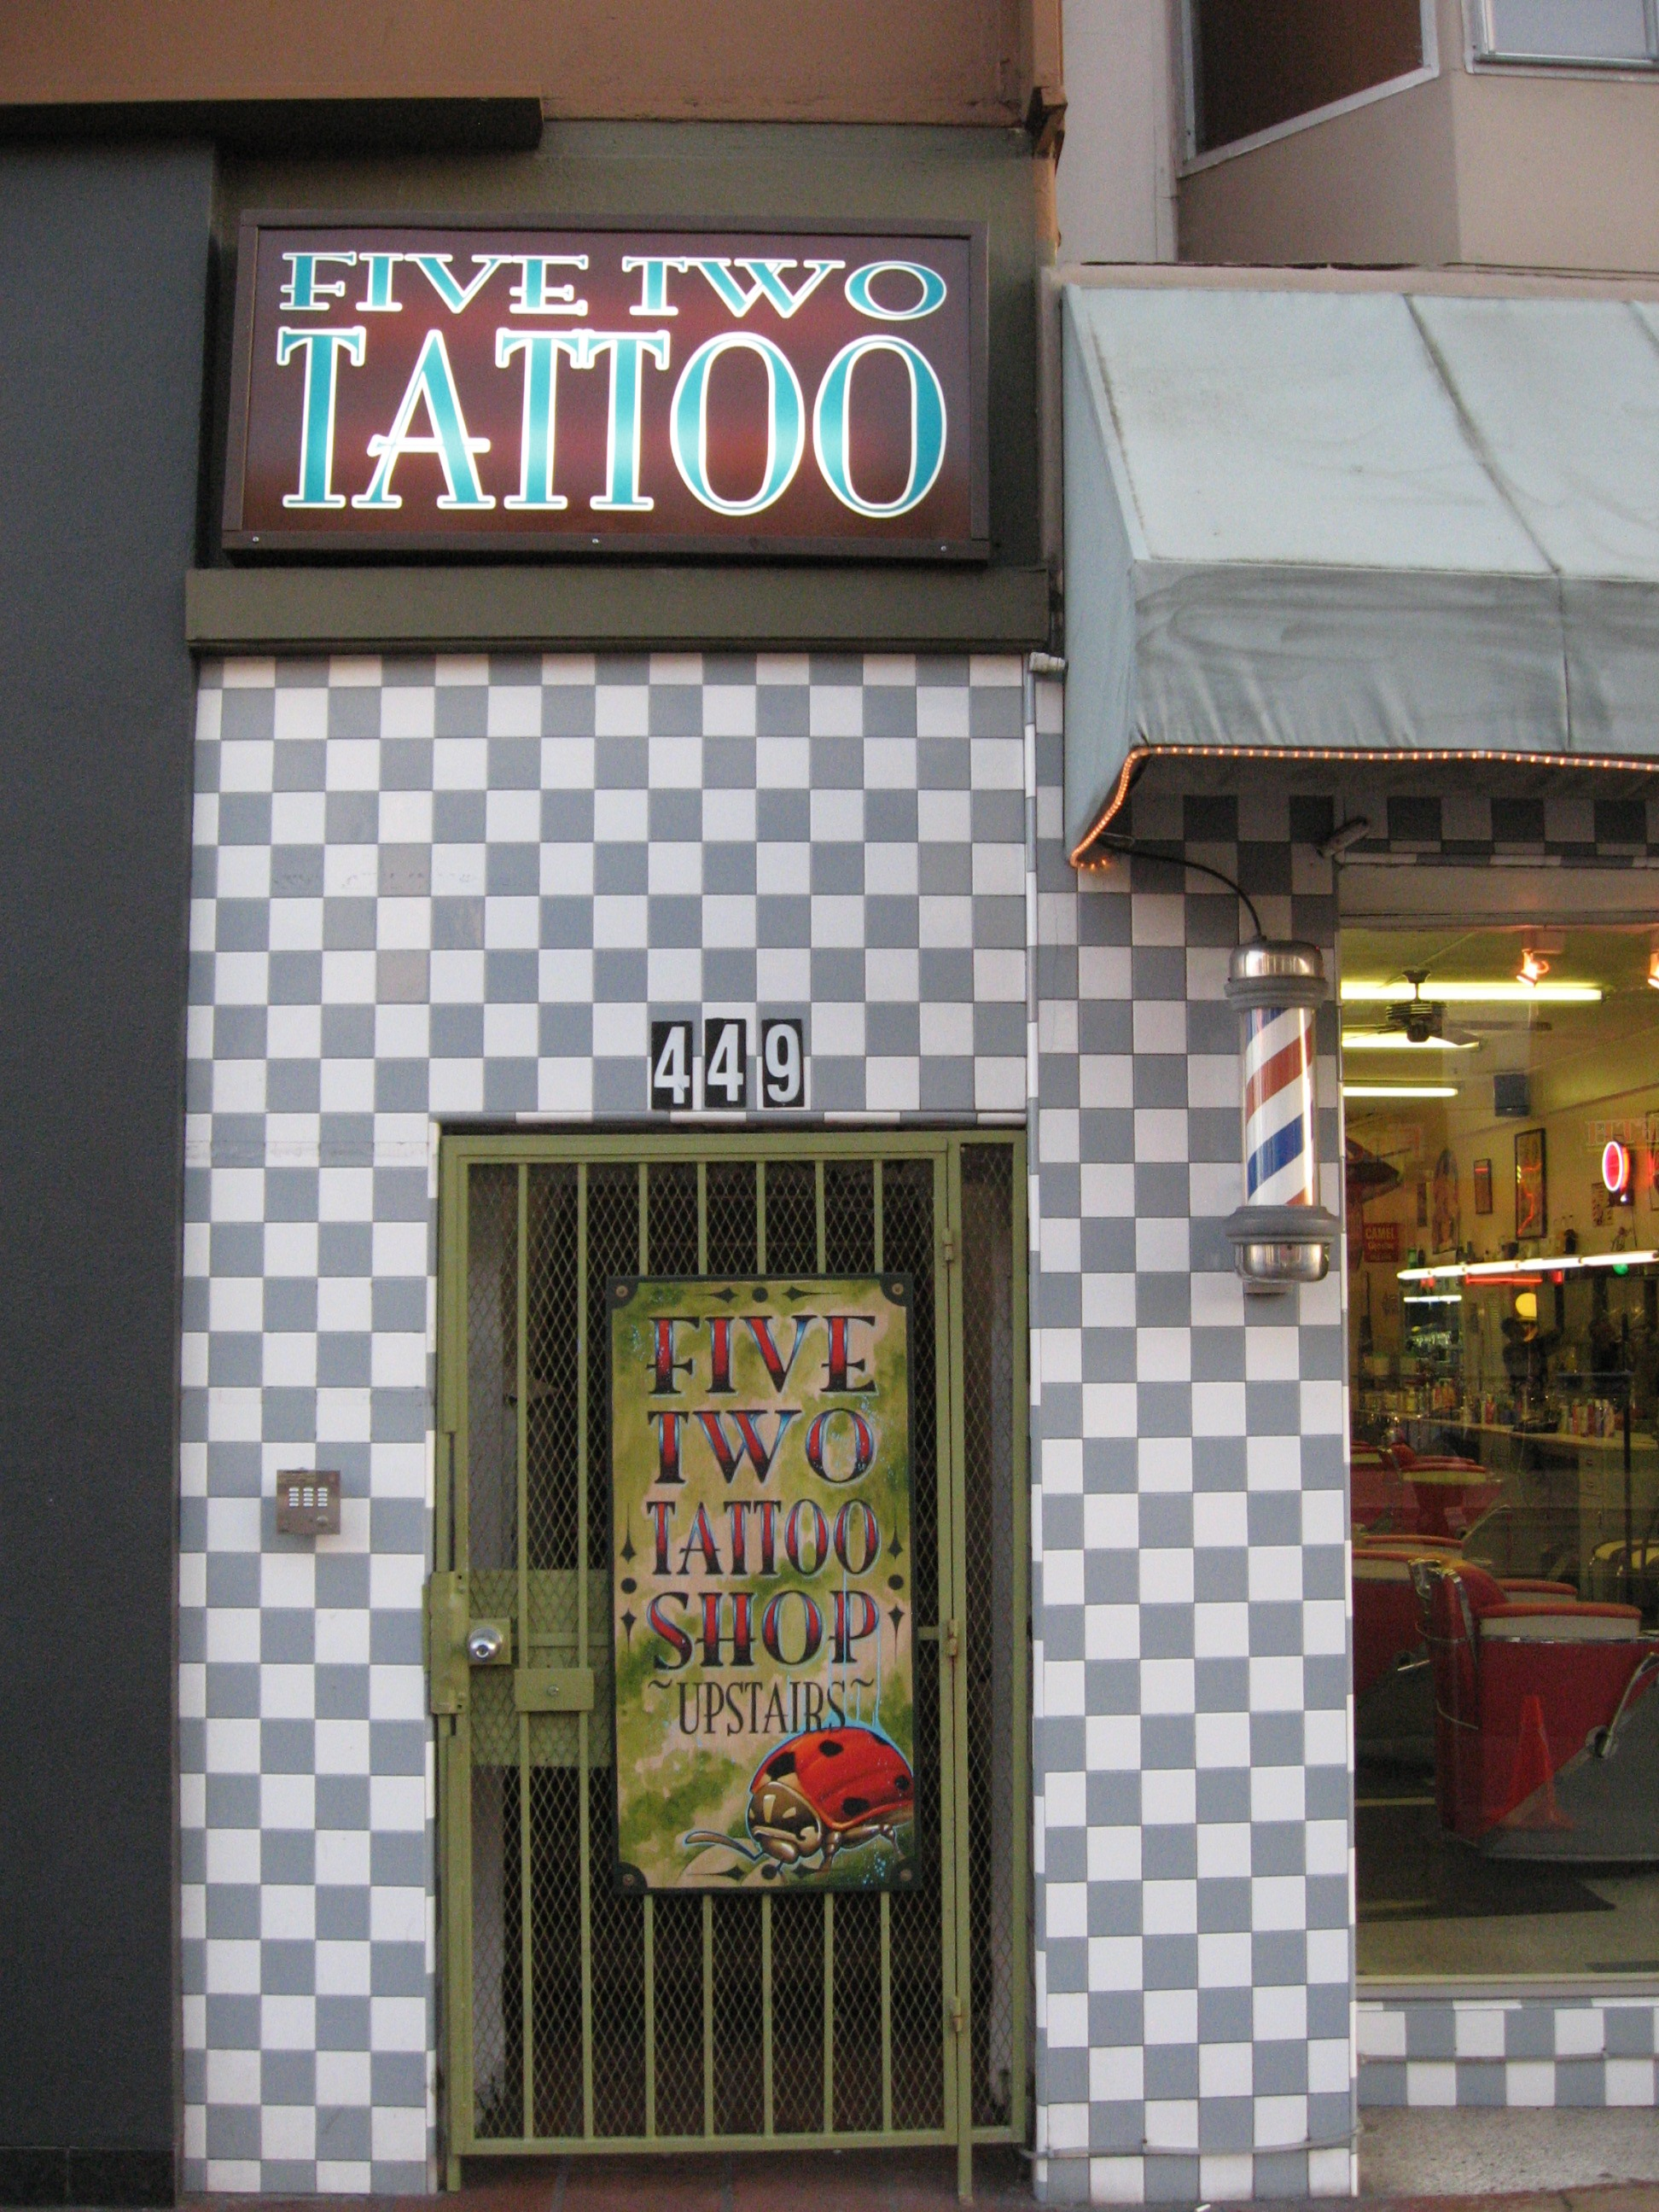 Tattoo Parlour in San Diego. We often find that tattoo parlours have some of the funkiest store fronts.